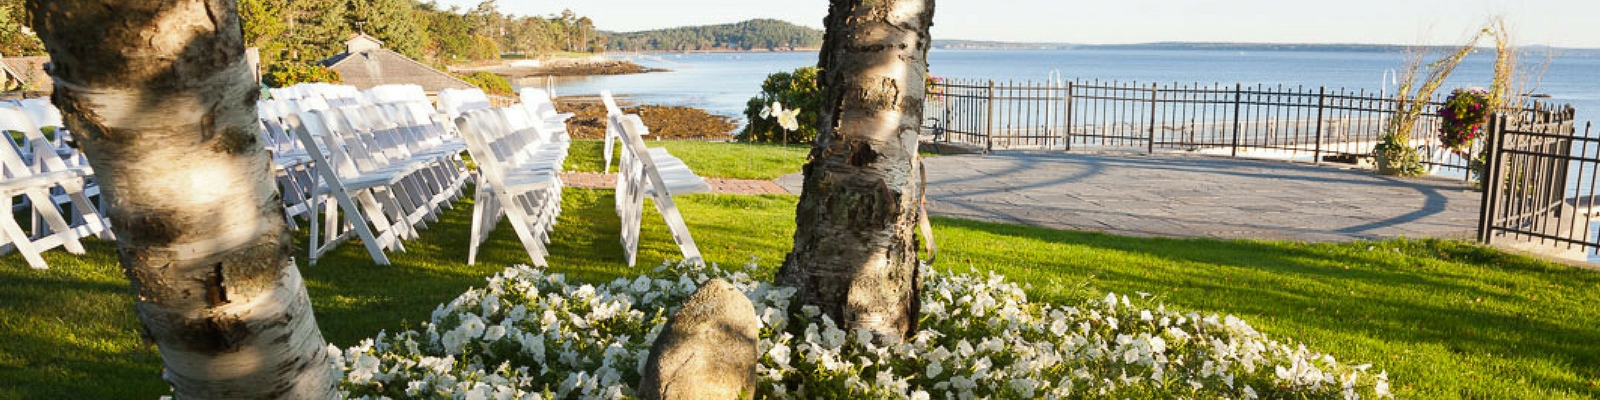 Meetings and weddings Acadia National Park Bar Harbor Maine